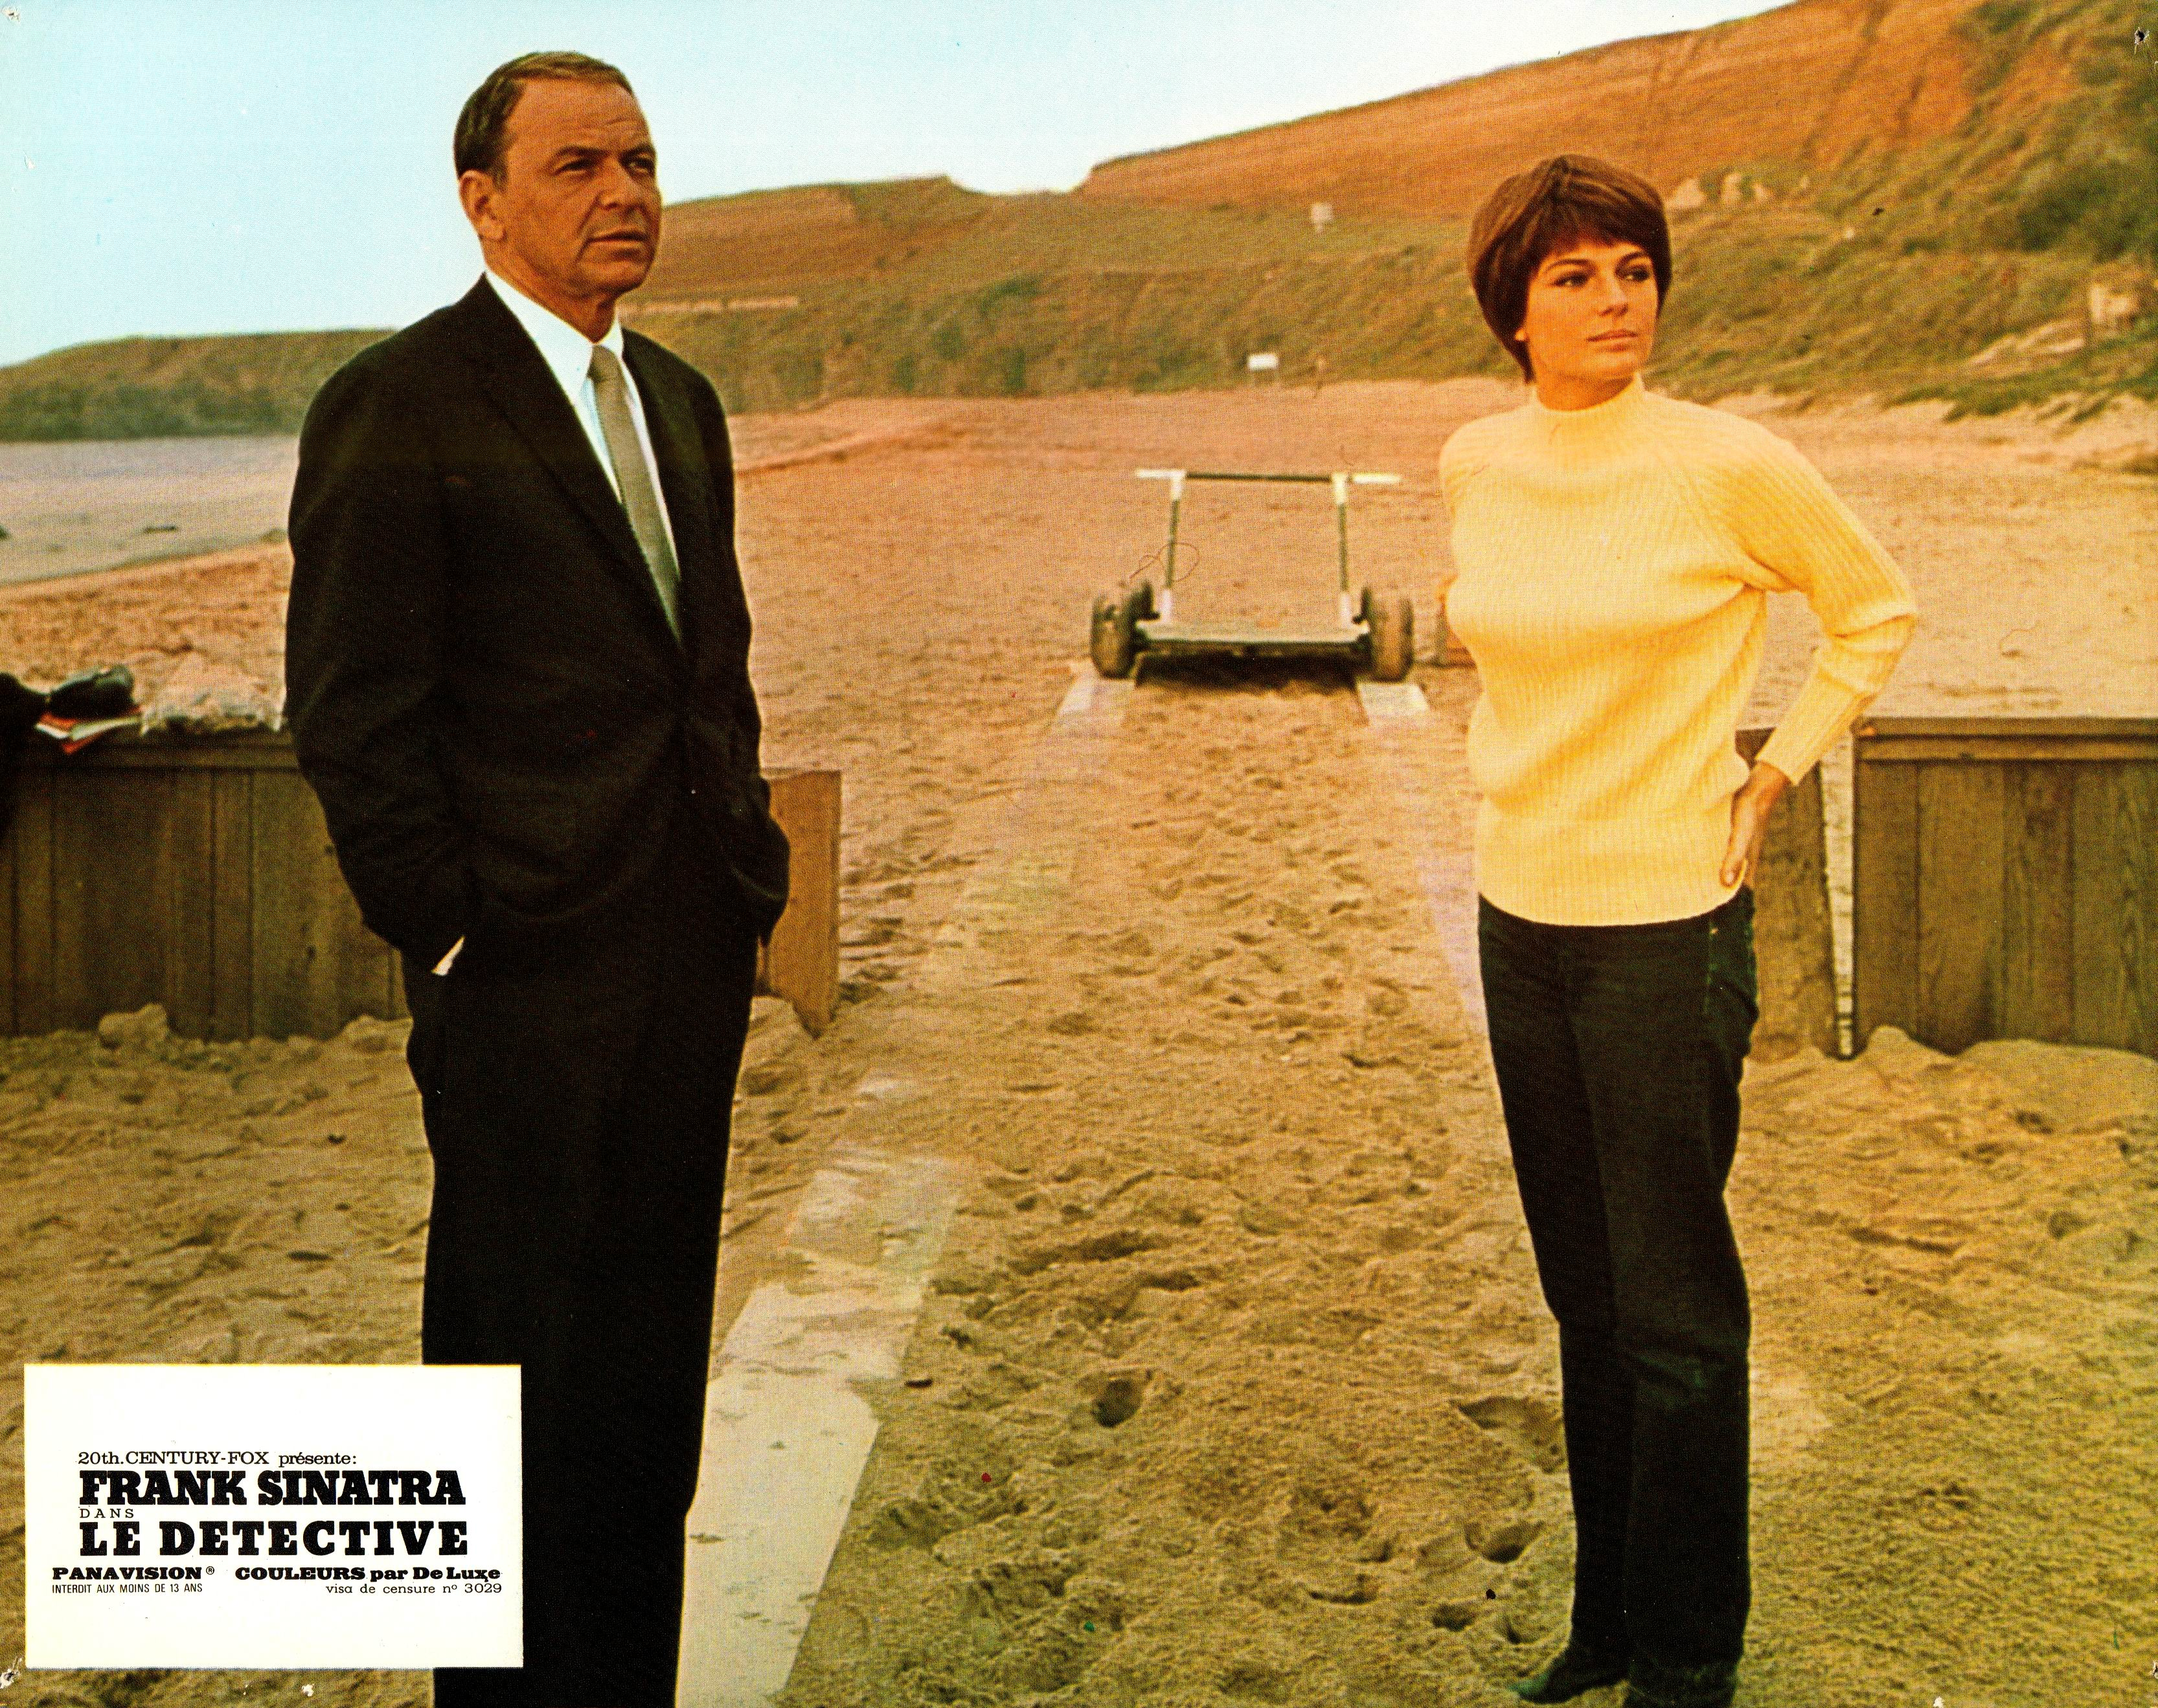 Frank Sinatra and Jacqueline Bisset in The Detective (1968)